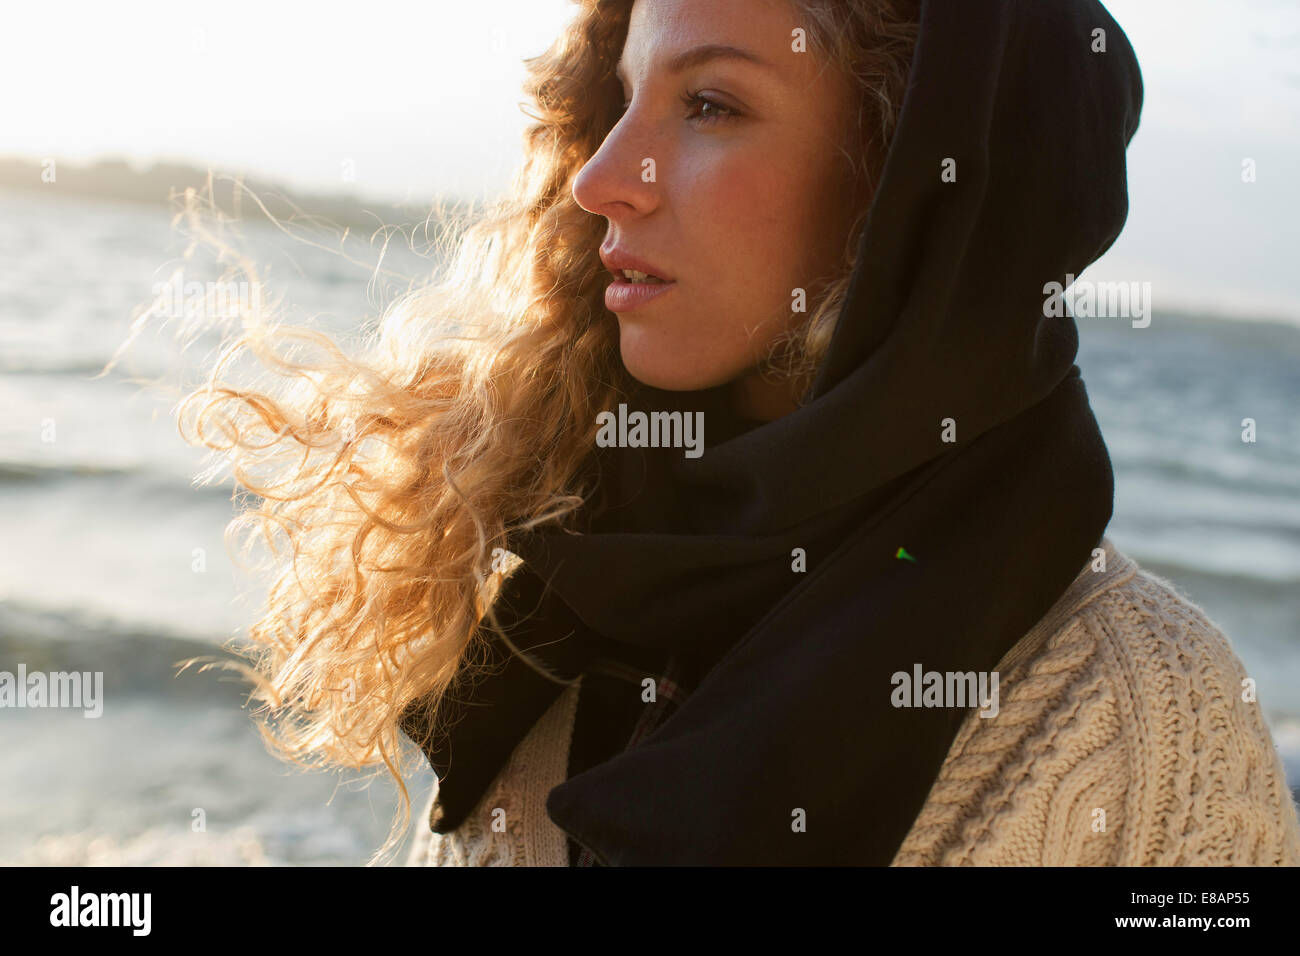 Woman all wrapped up on windy beach - Stock Image